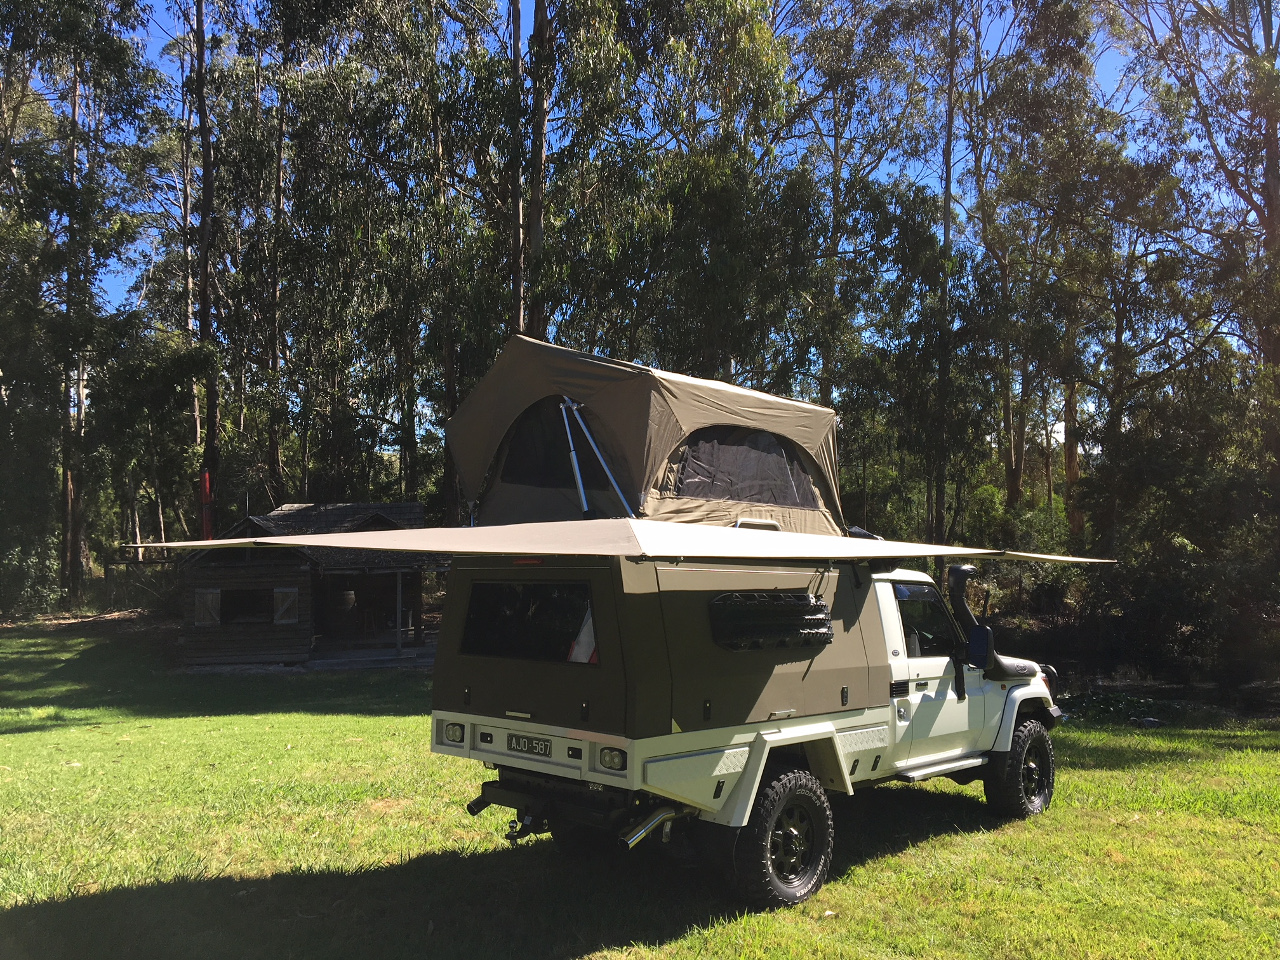 Camping Umbrella CleverShade 4WD Awning